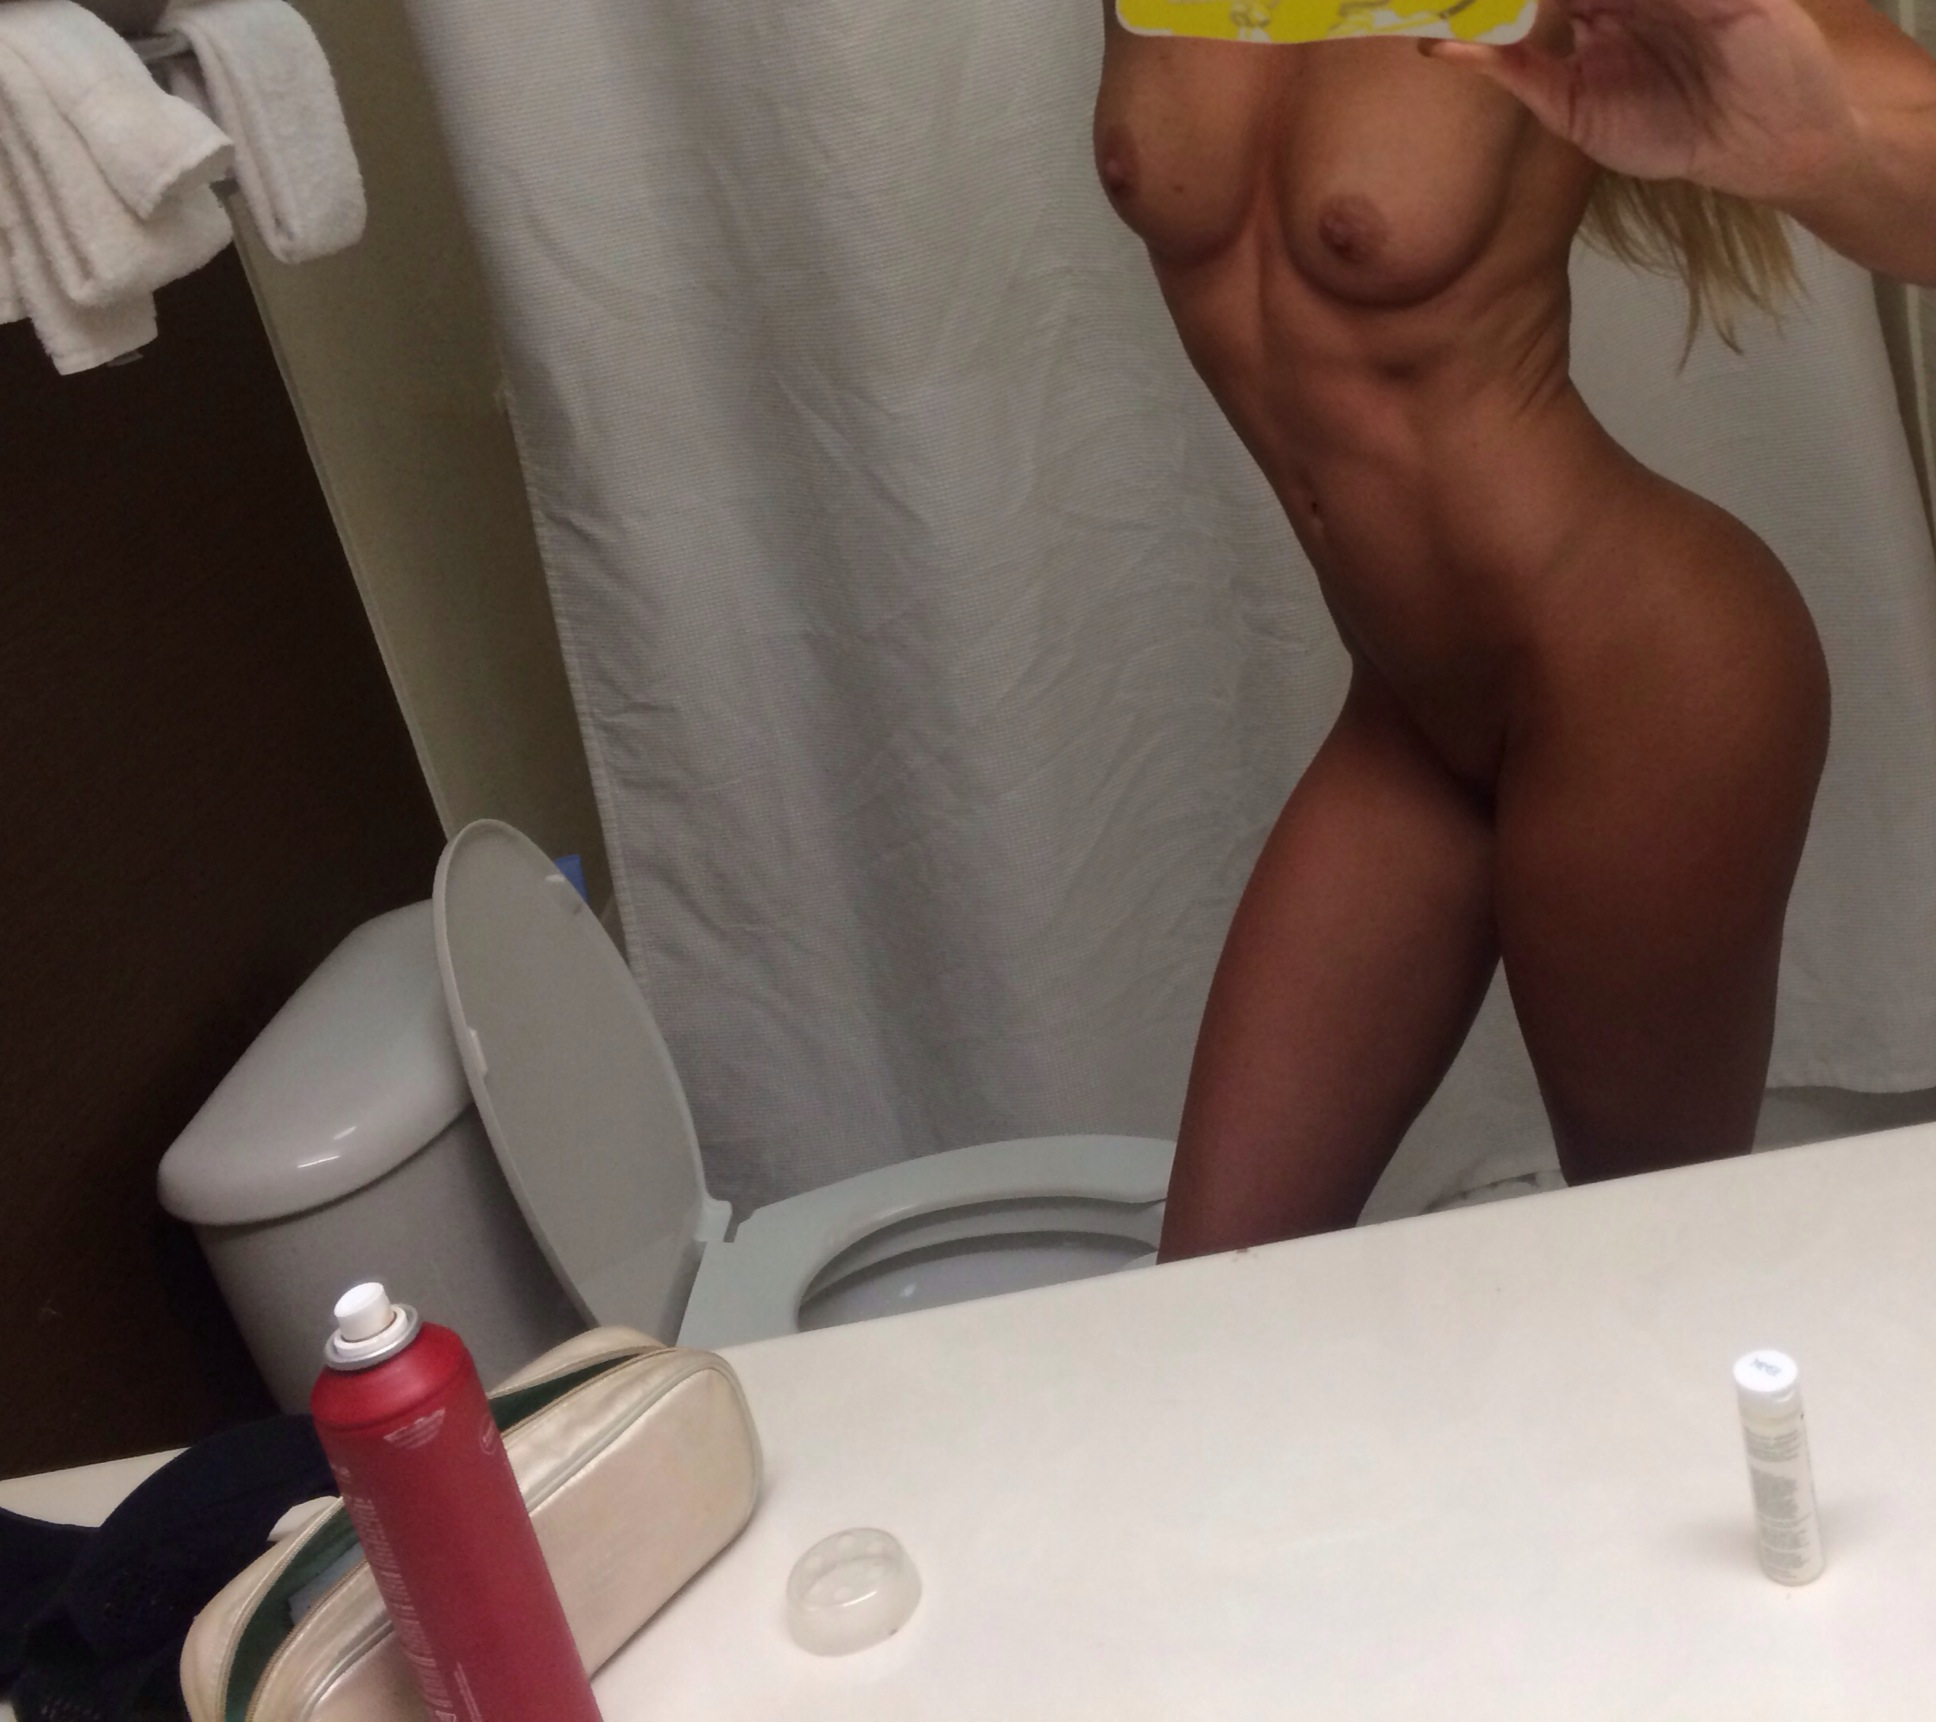 Danielle Wyatt nude leaked lesbian sex tape and sex photos from SnapChat The Fappening 2019